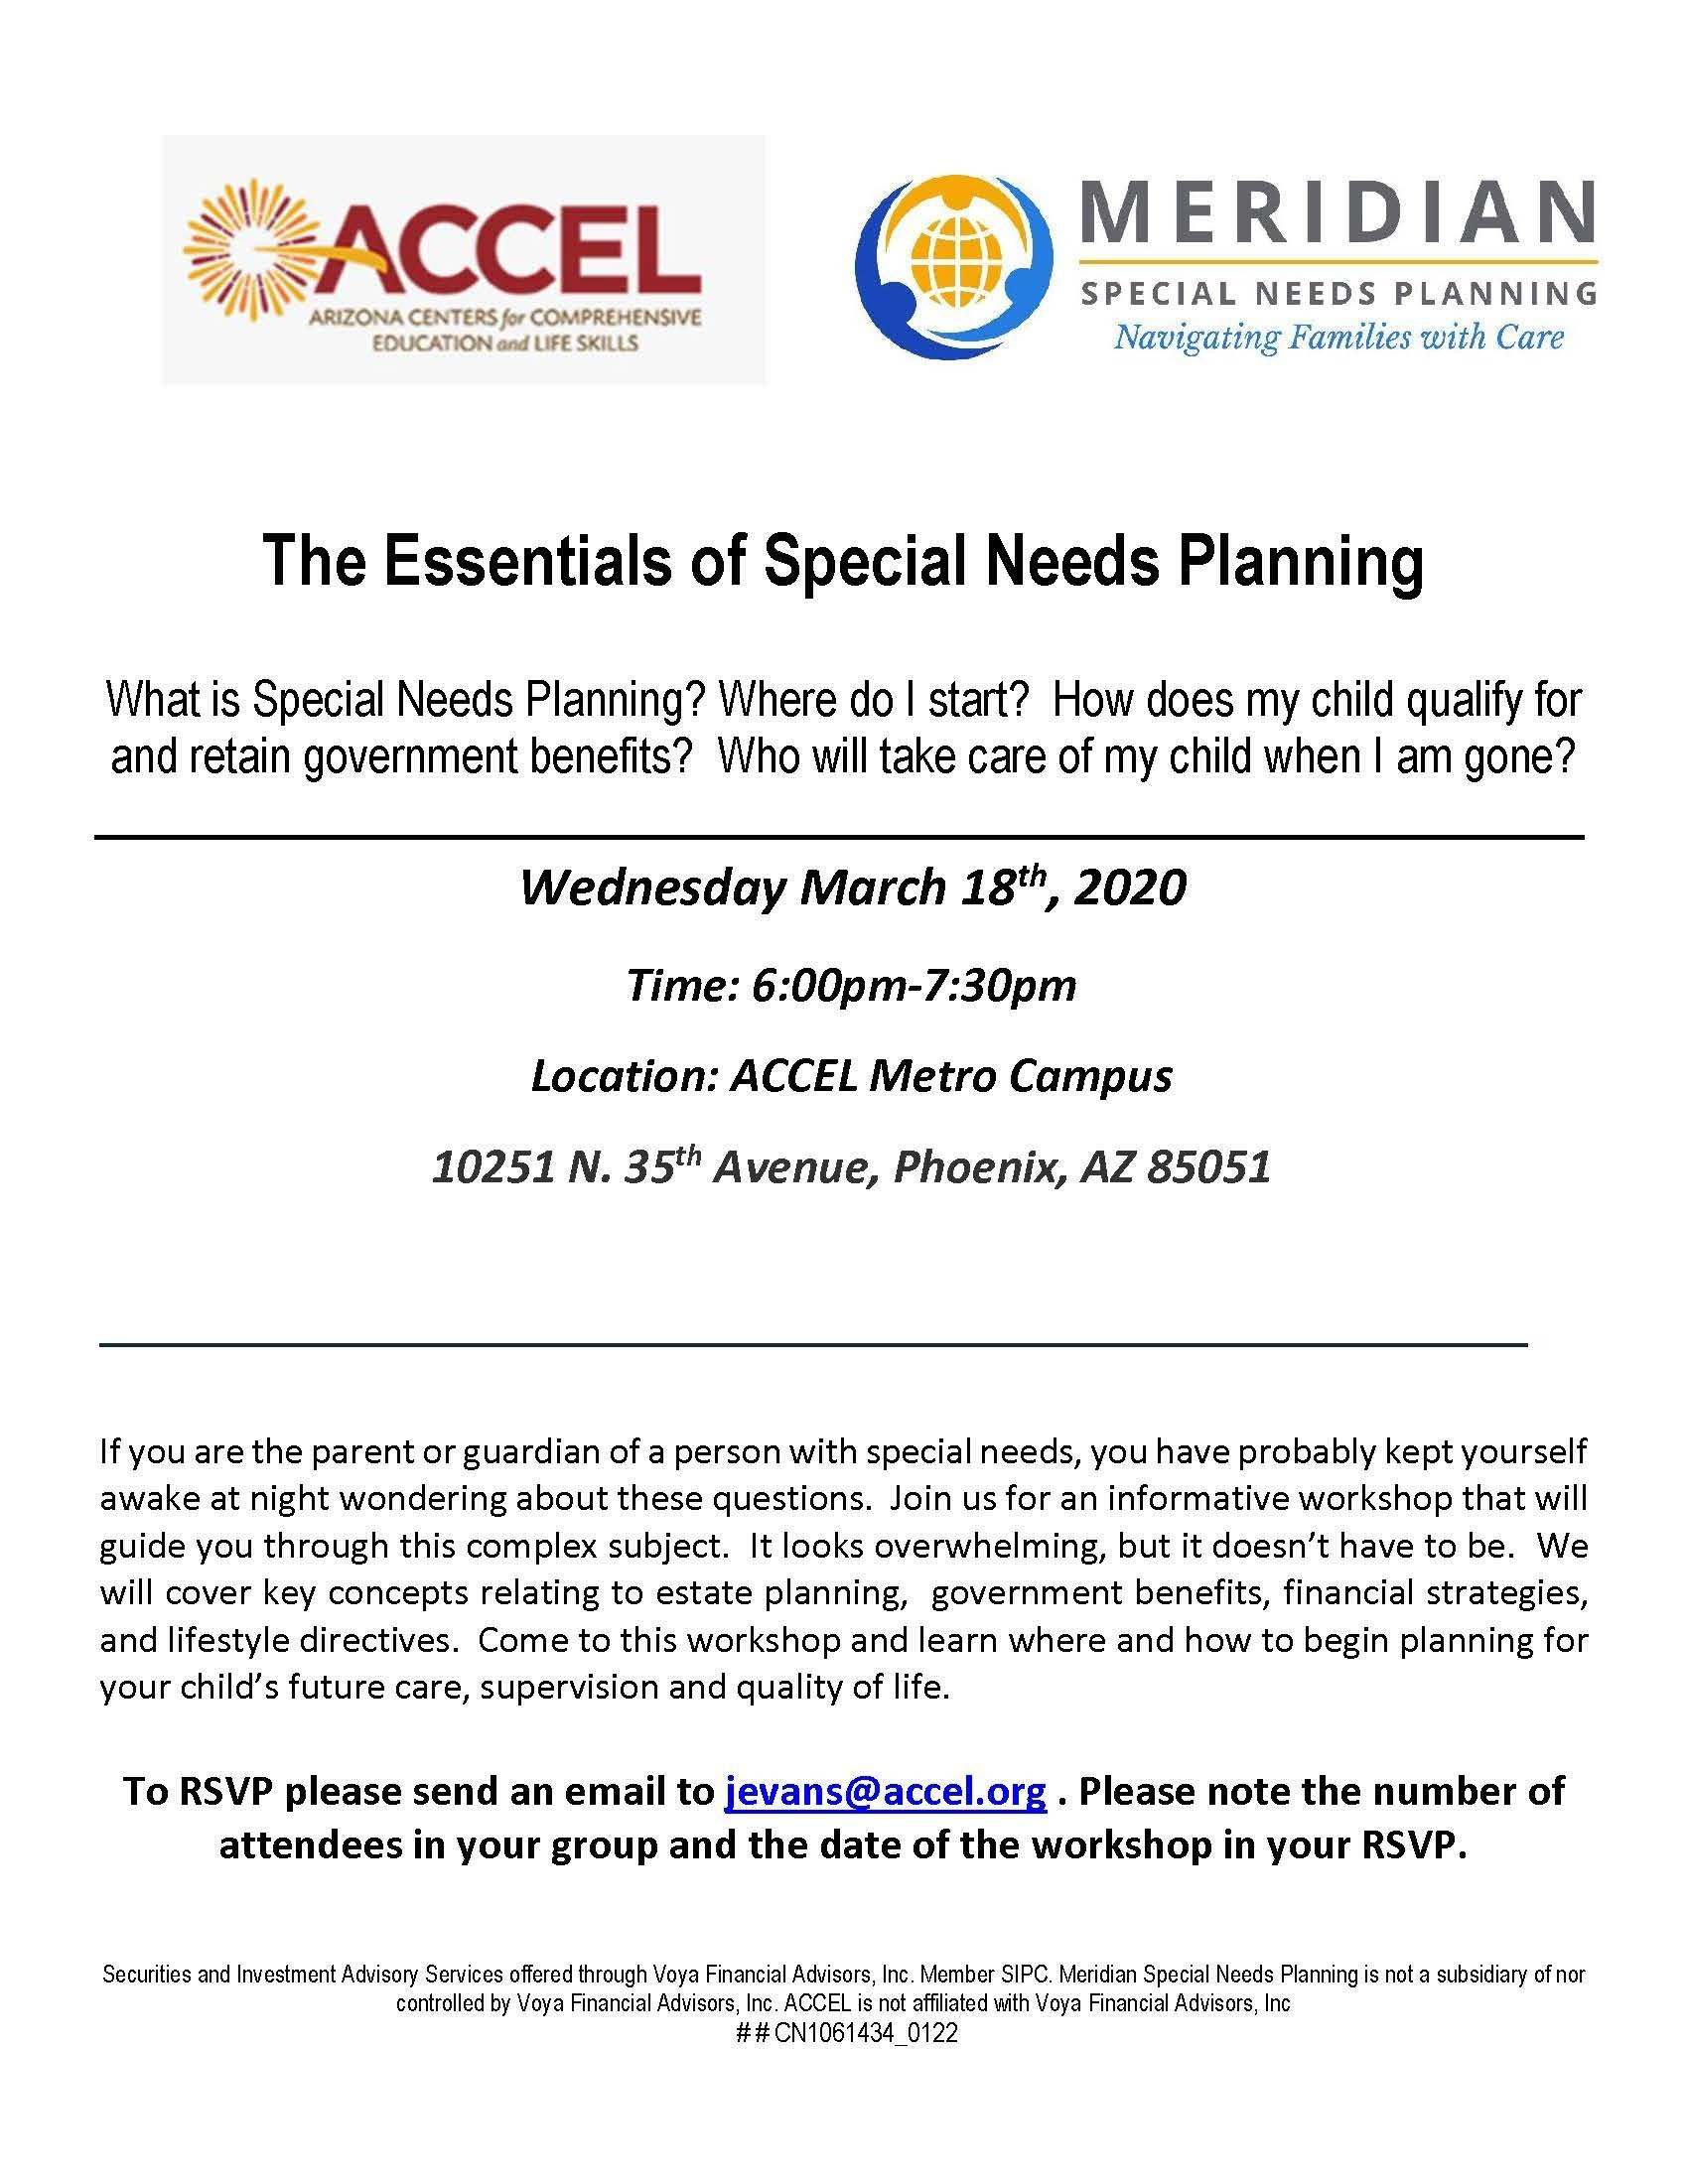 Essentials of Special Needs Planning Workshop Thumbnail